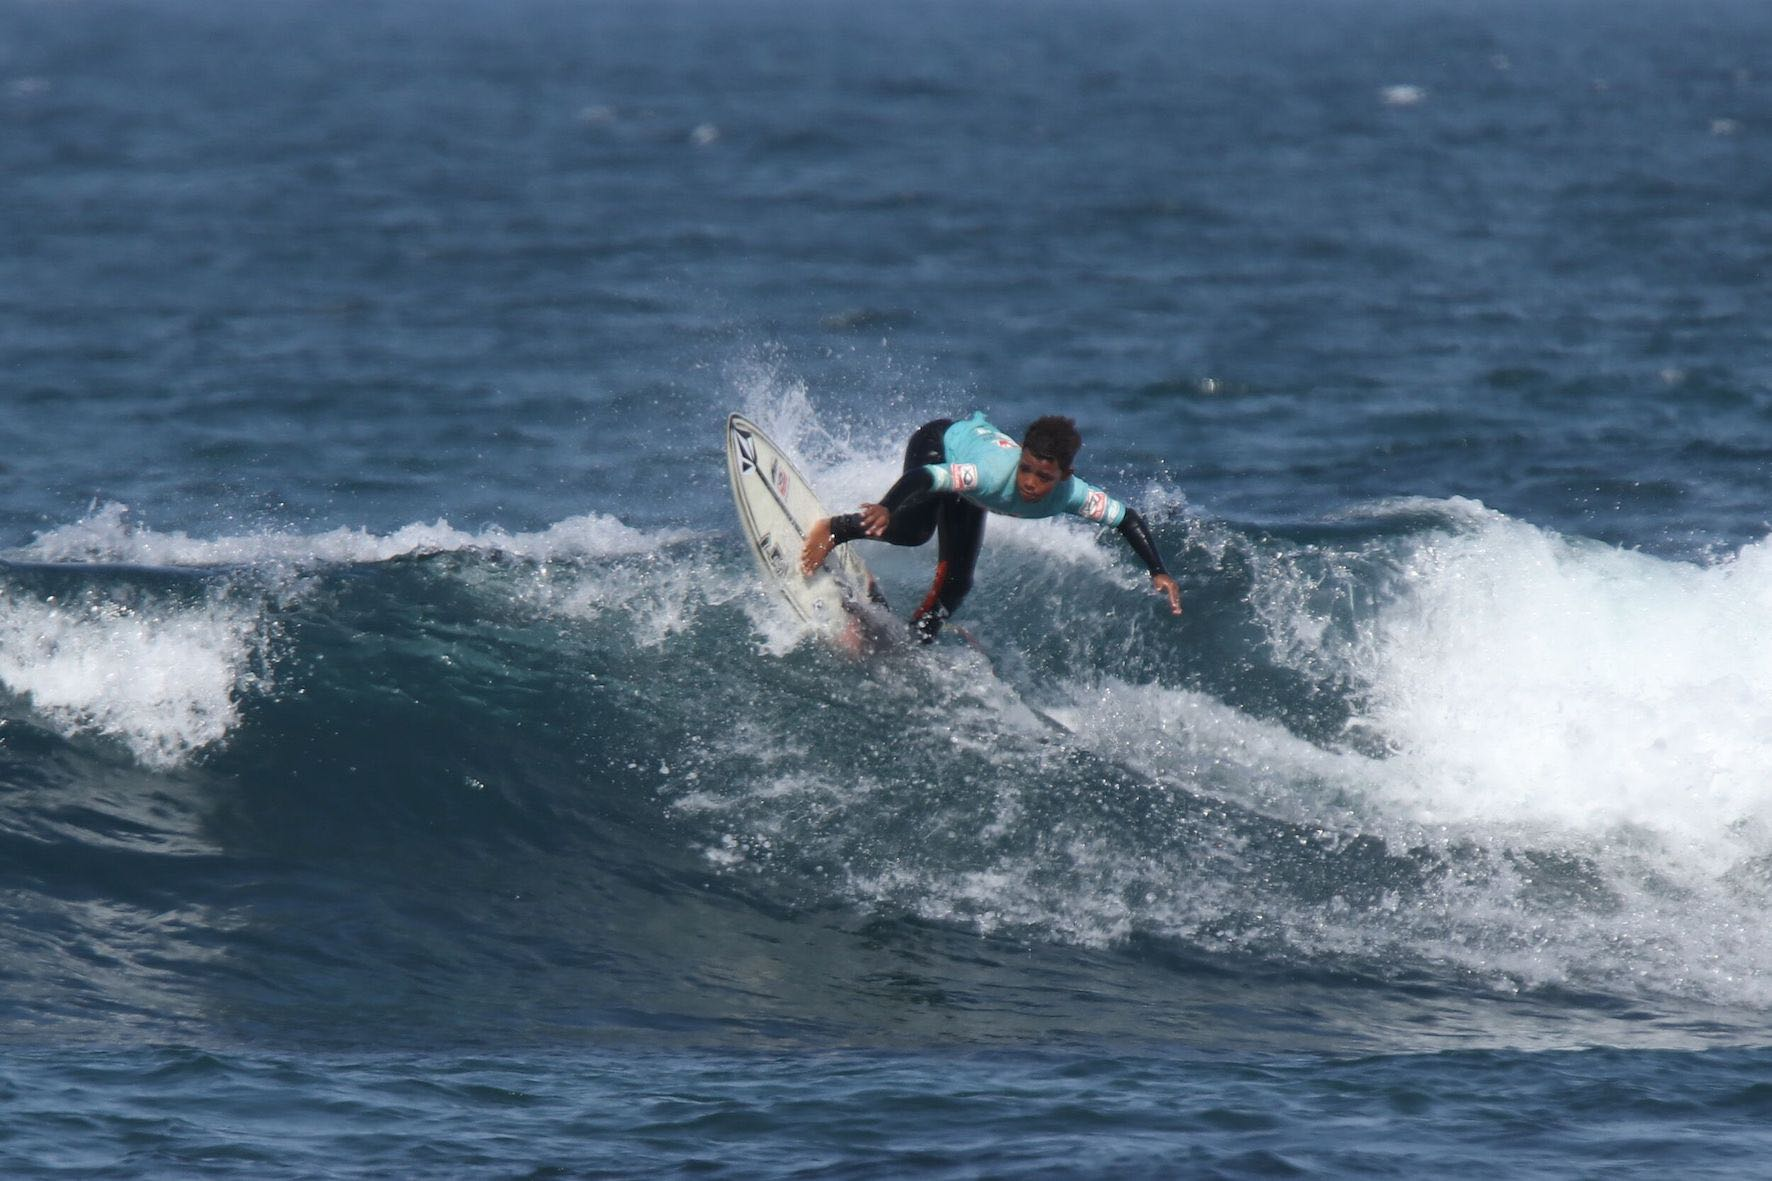 Gordon Falangile surfing in the 2019 Sea Harvest South African Junior Surfing Championships